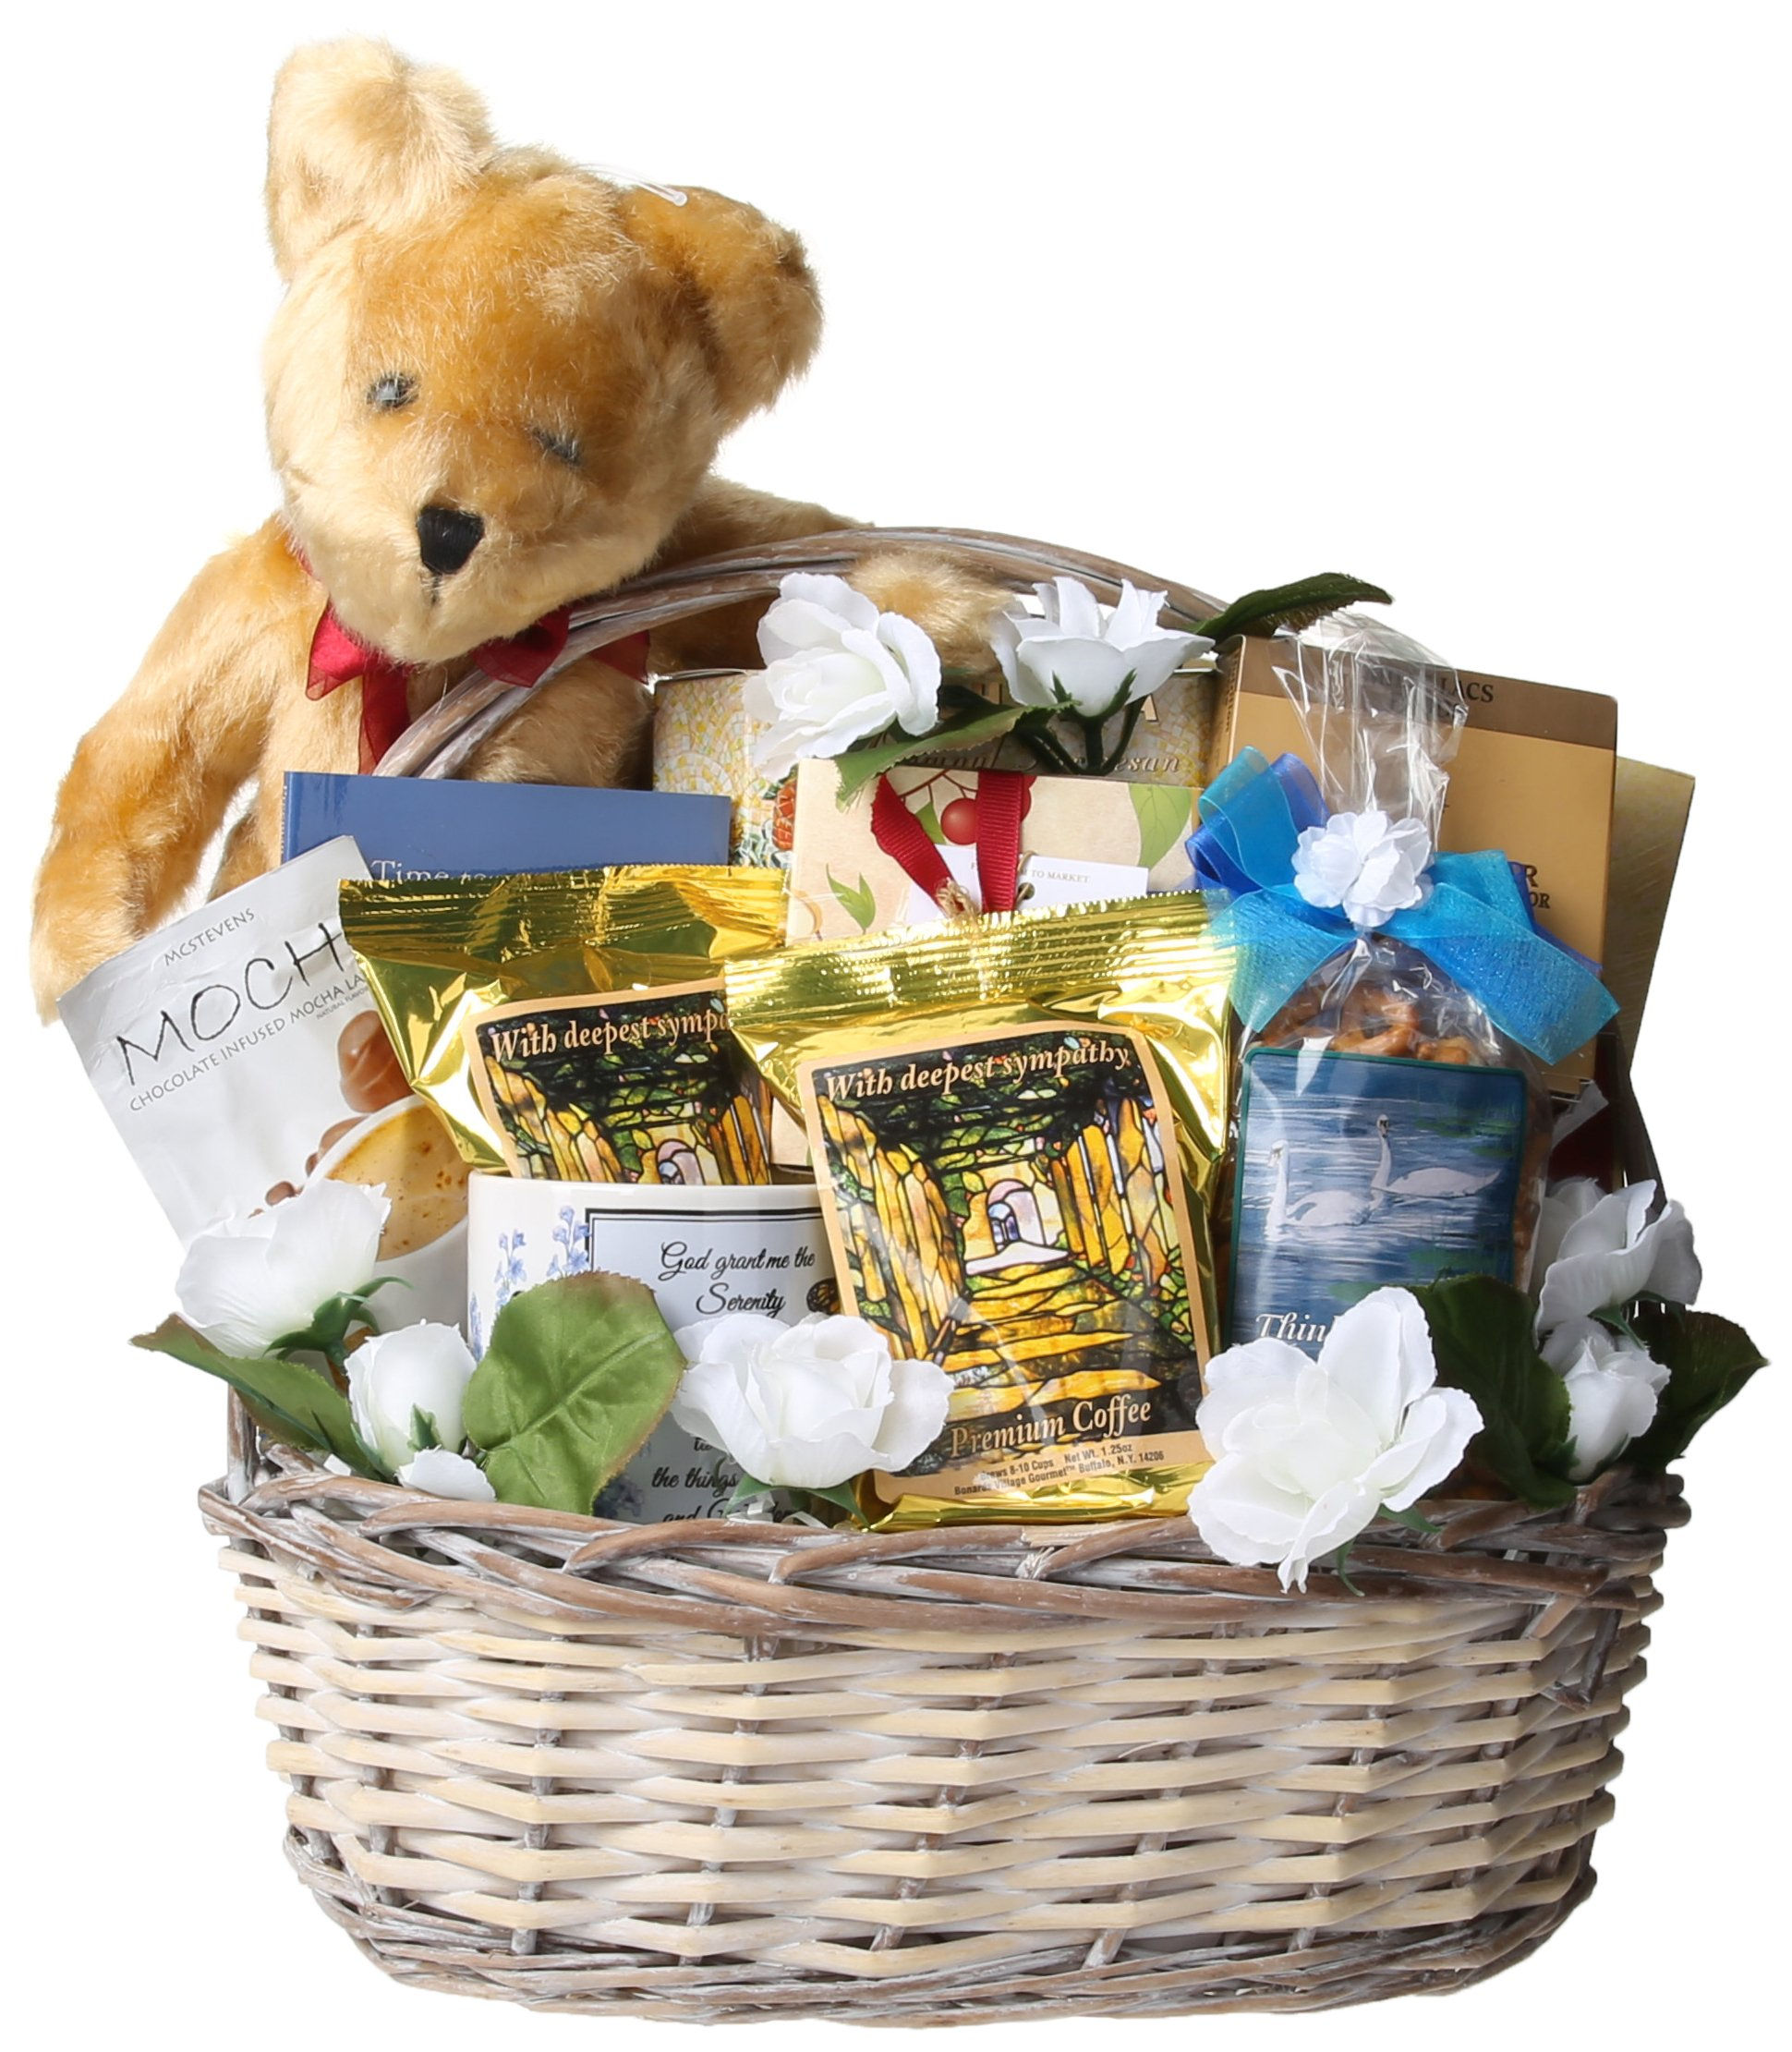 Gift Basket Village - The Comfort Basket, A Bereavement/Sympathy Gift Basket   Comfort Those Grieving A The Loss Of A Loved One (Large)